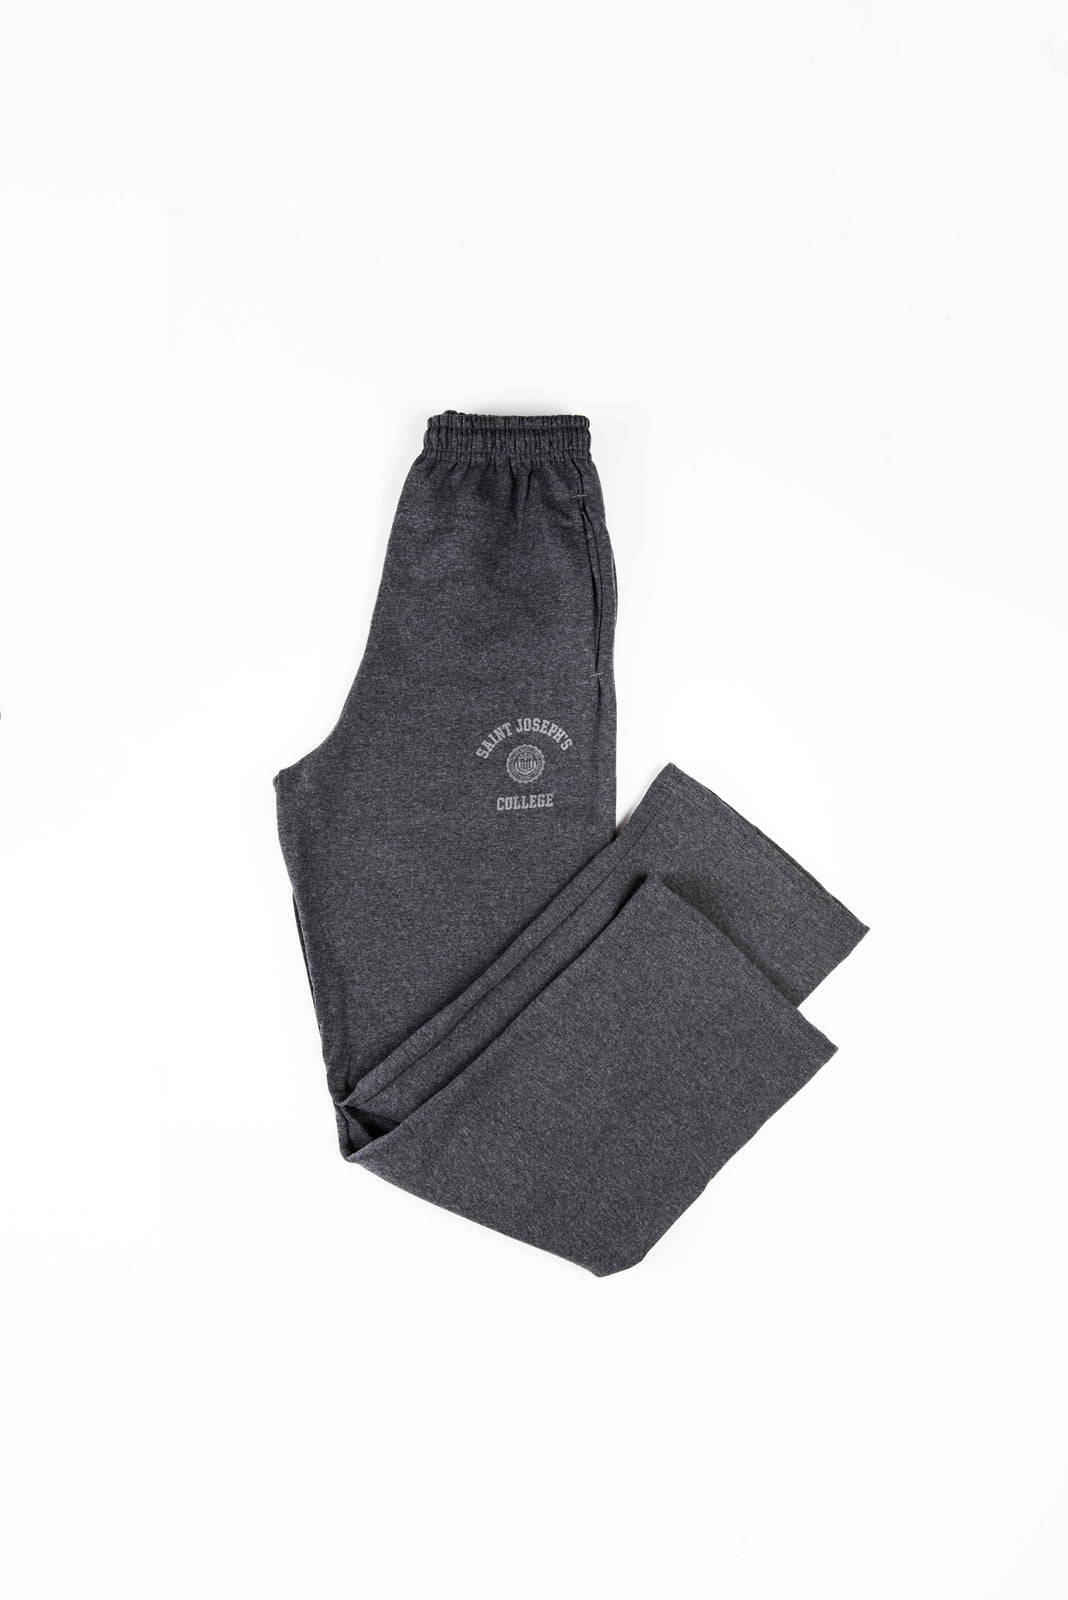 Grey SJC Crest Straight Leg Sweatpants